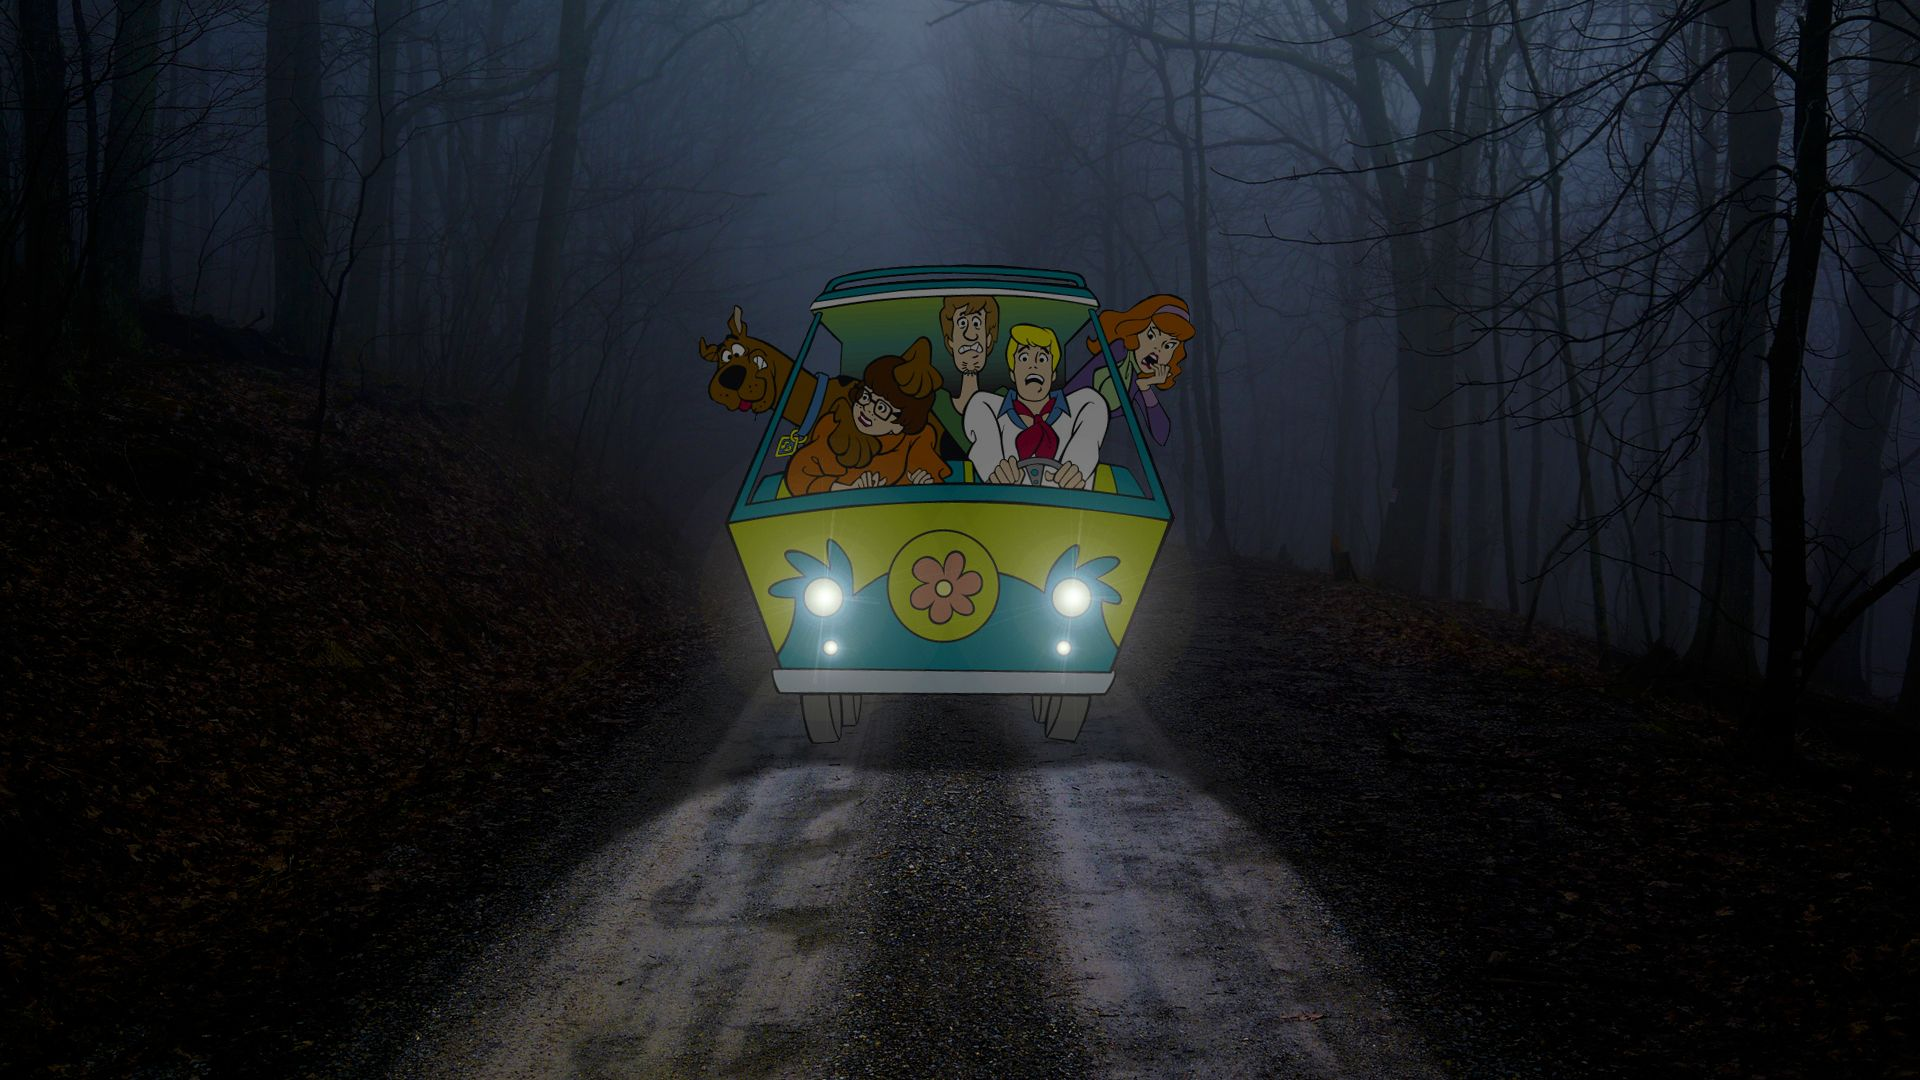 35 Scooby doo Characters Wallpaper for PC 1920x1080